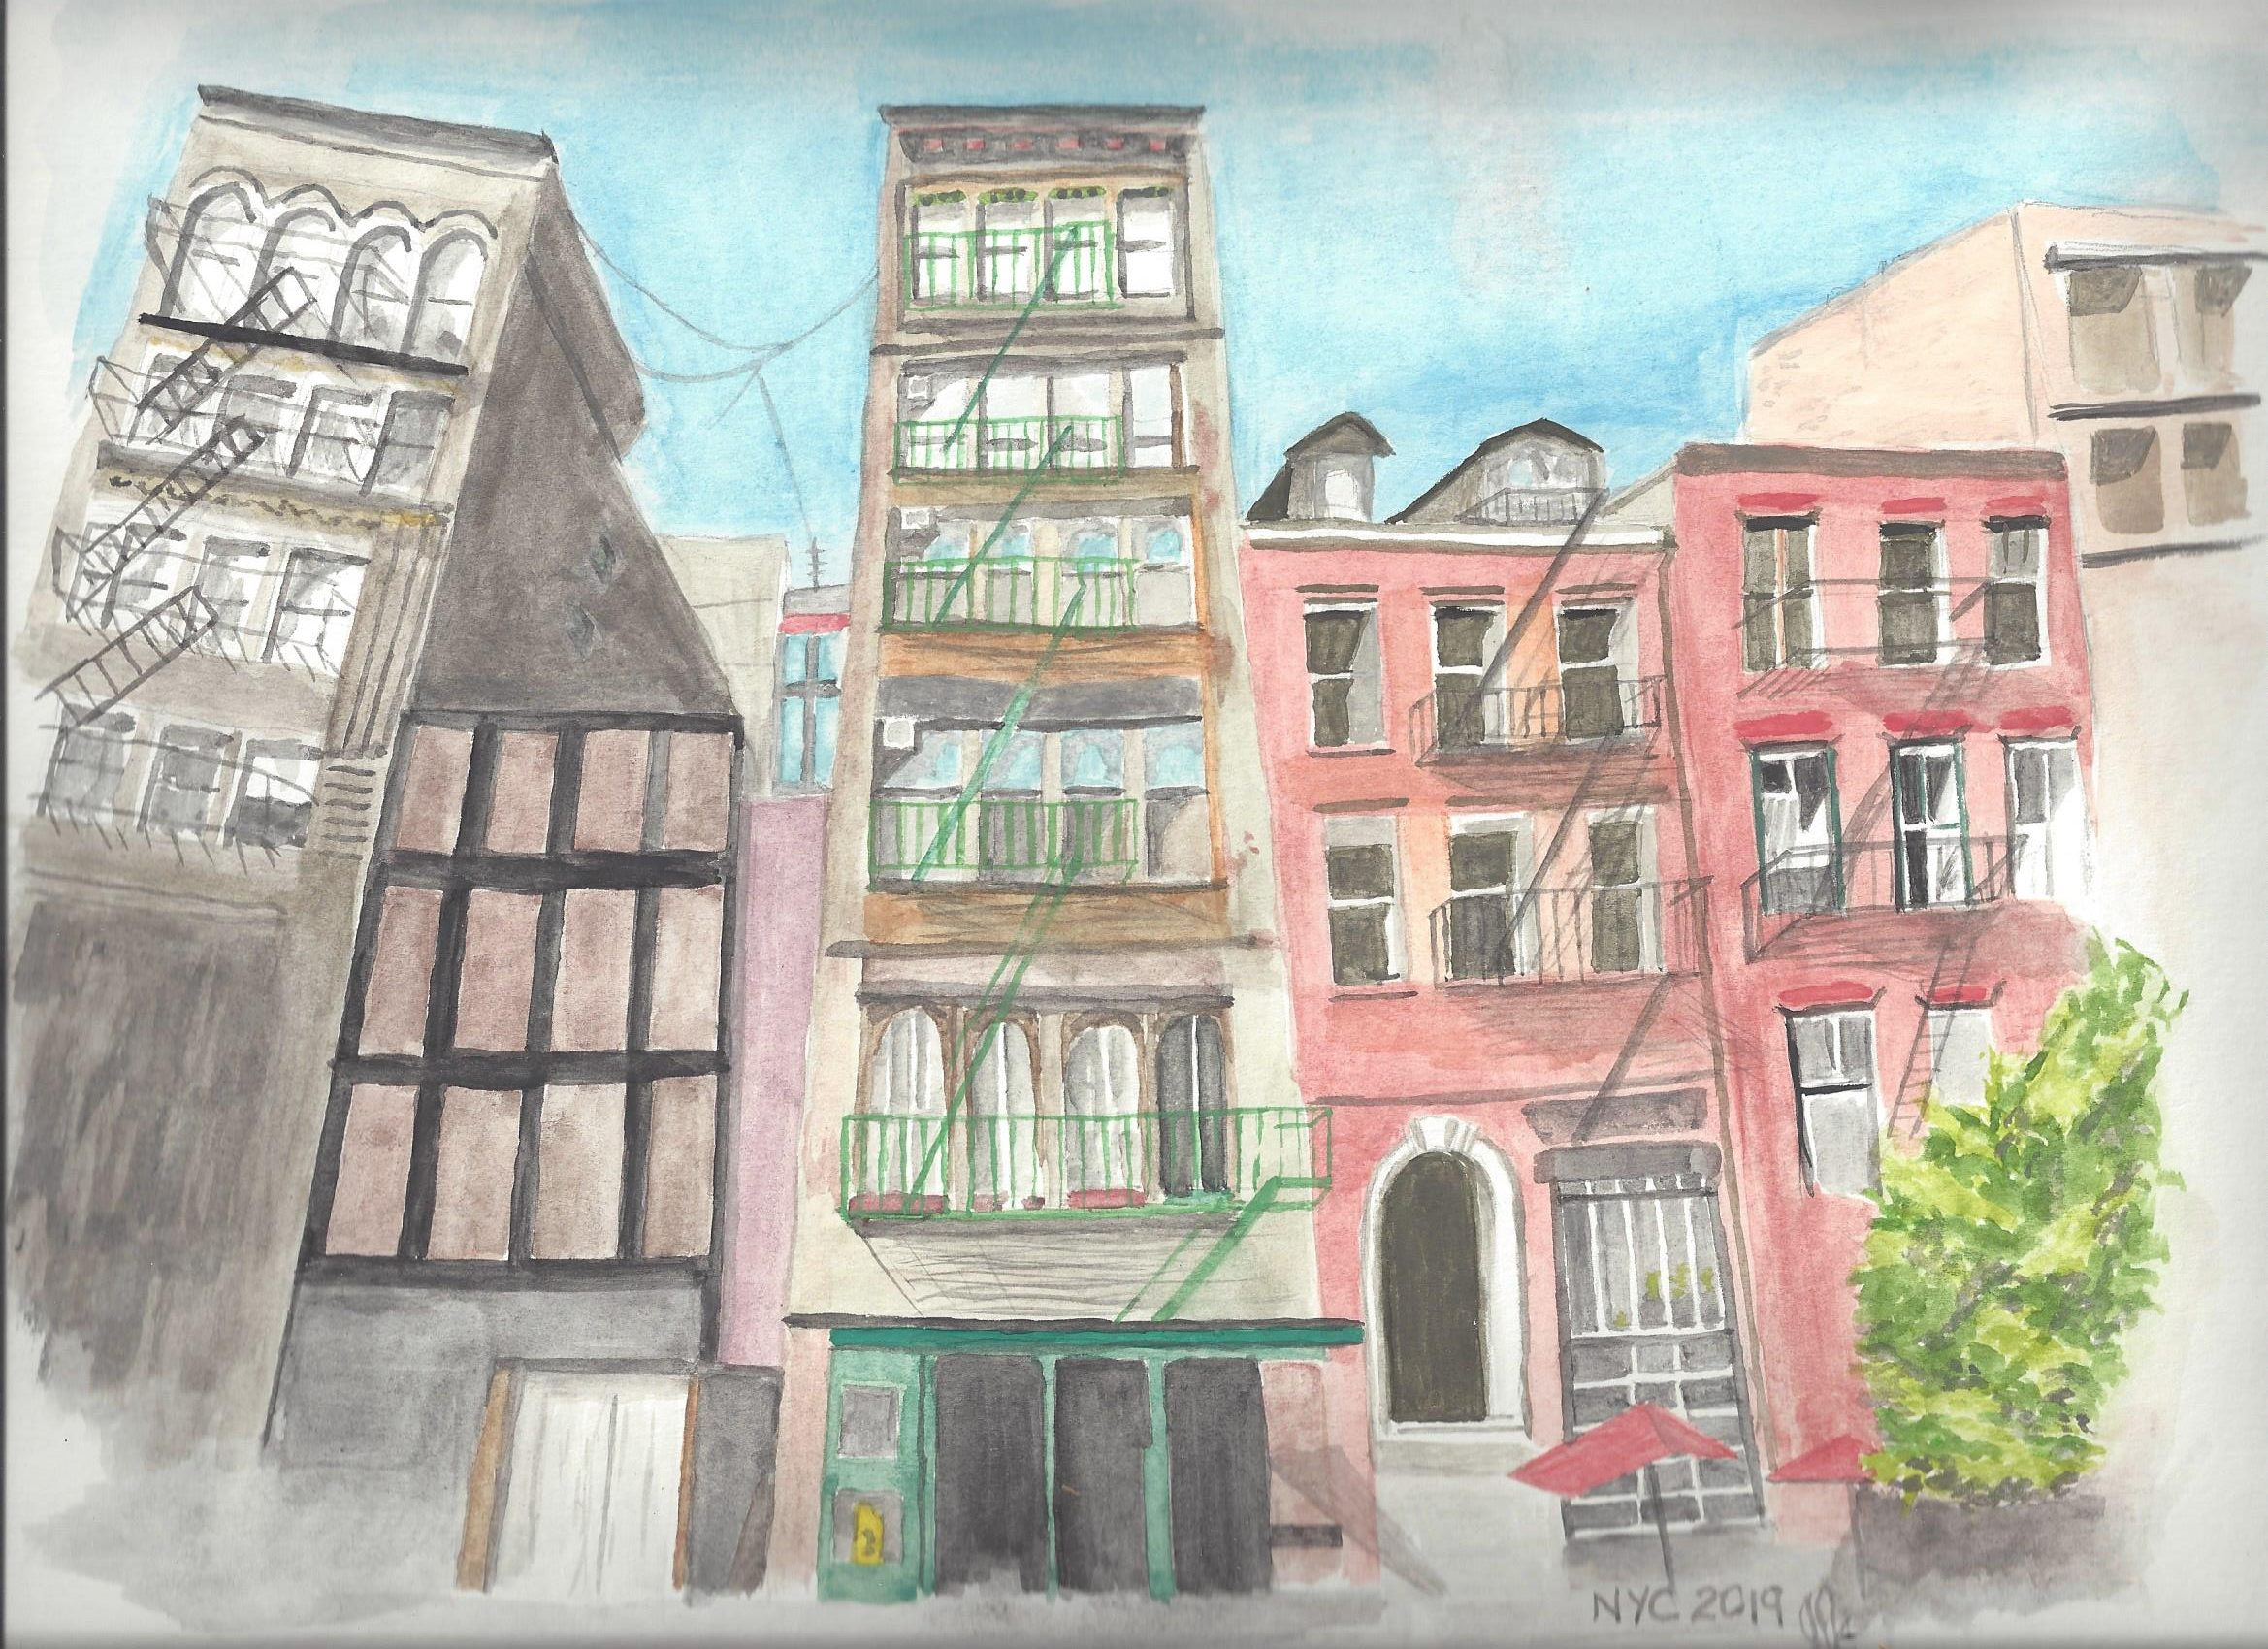 Water colour of buildings in New York City